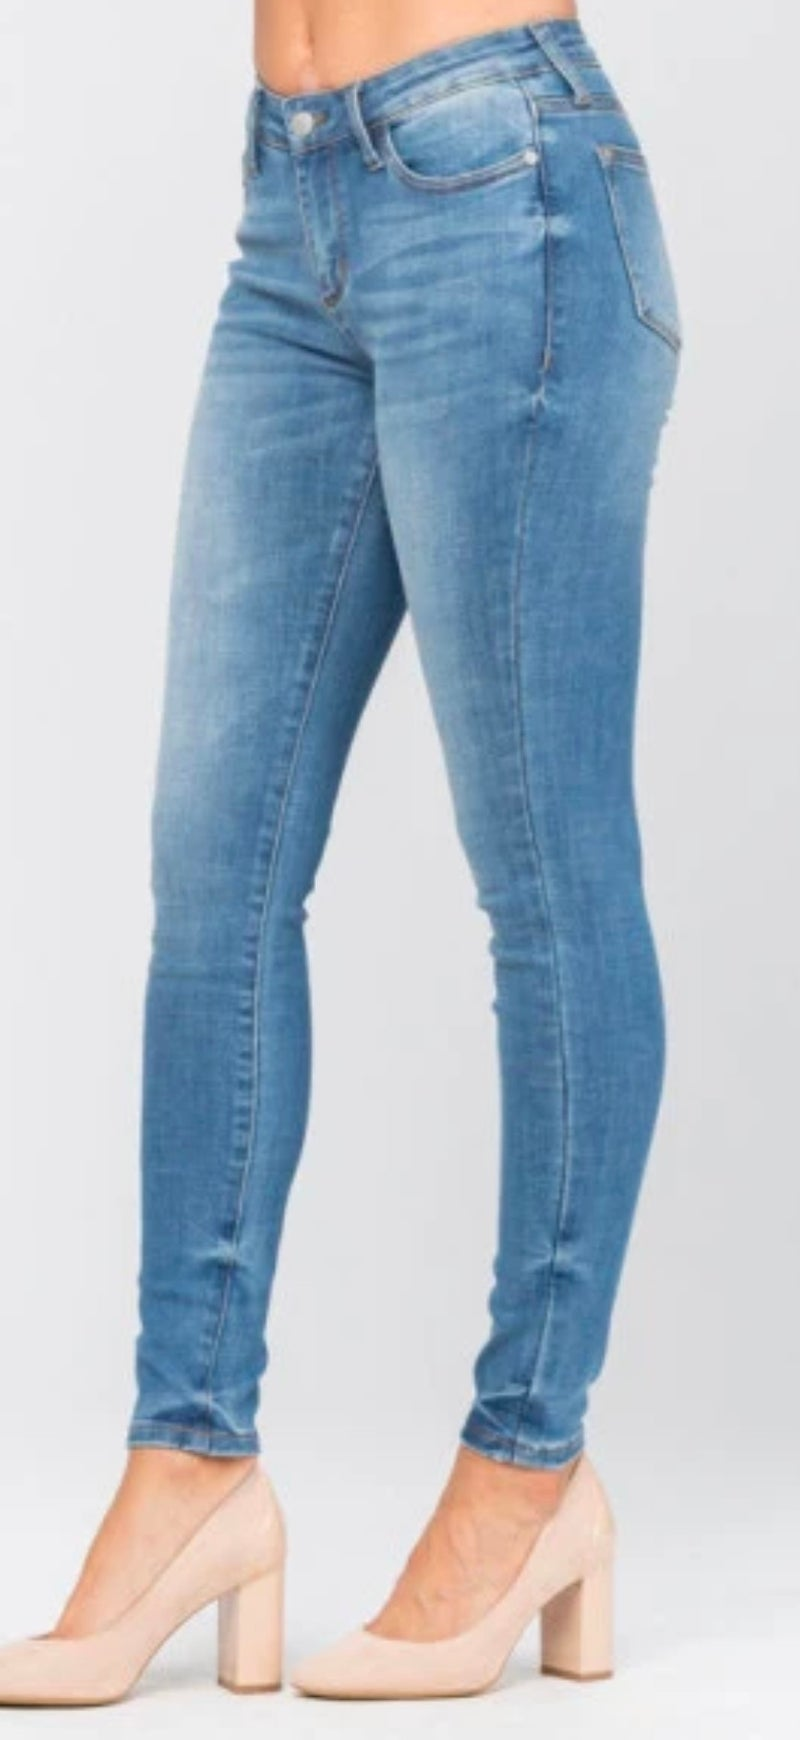 PLUS - Judy Blue High Waist Light Wash Skinny Jeans